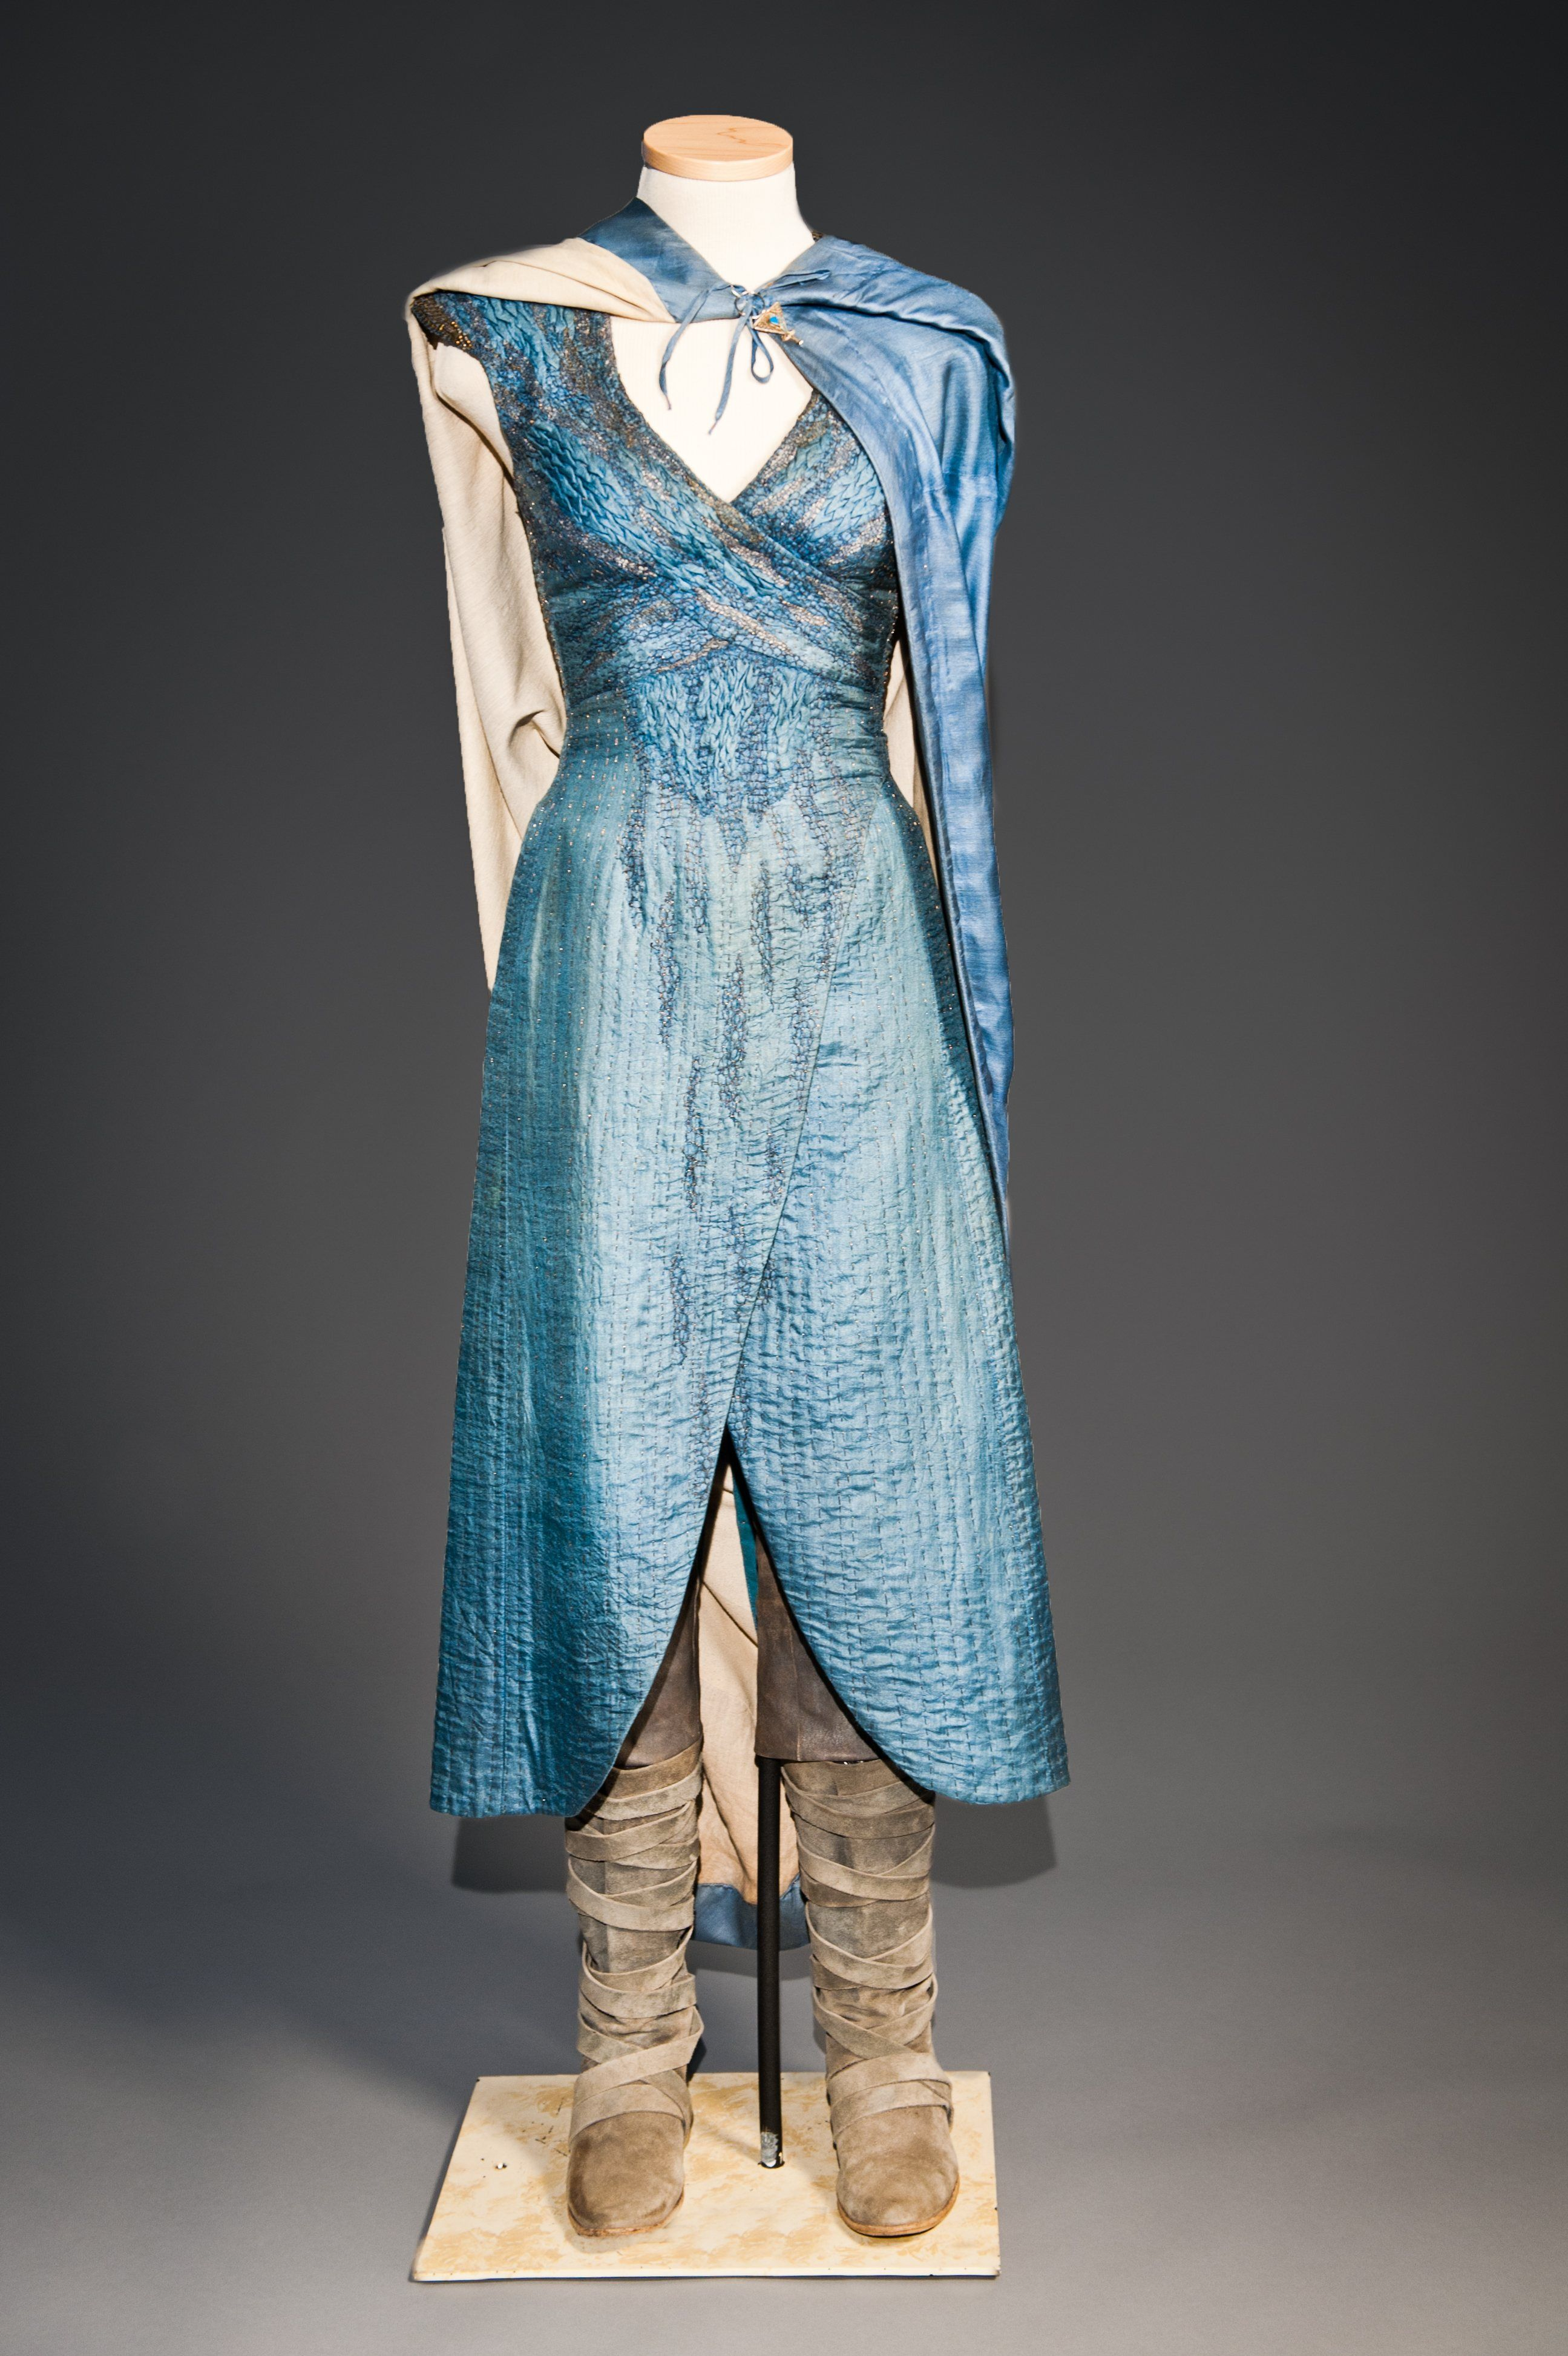 Daenerysu dress is gorgeous would be so cool if i could have it as